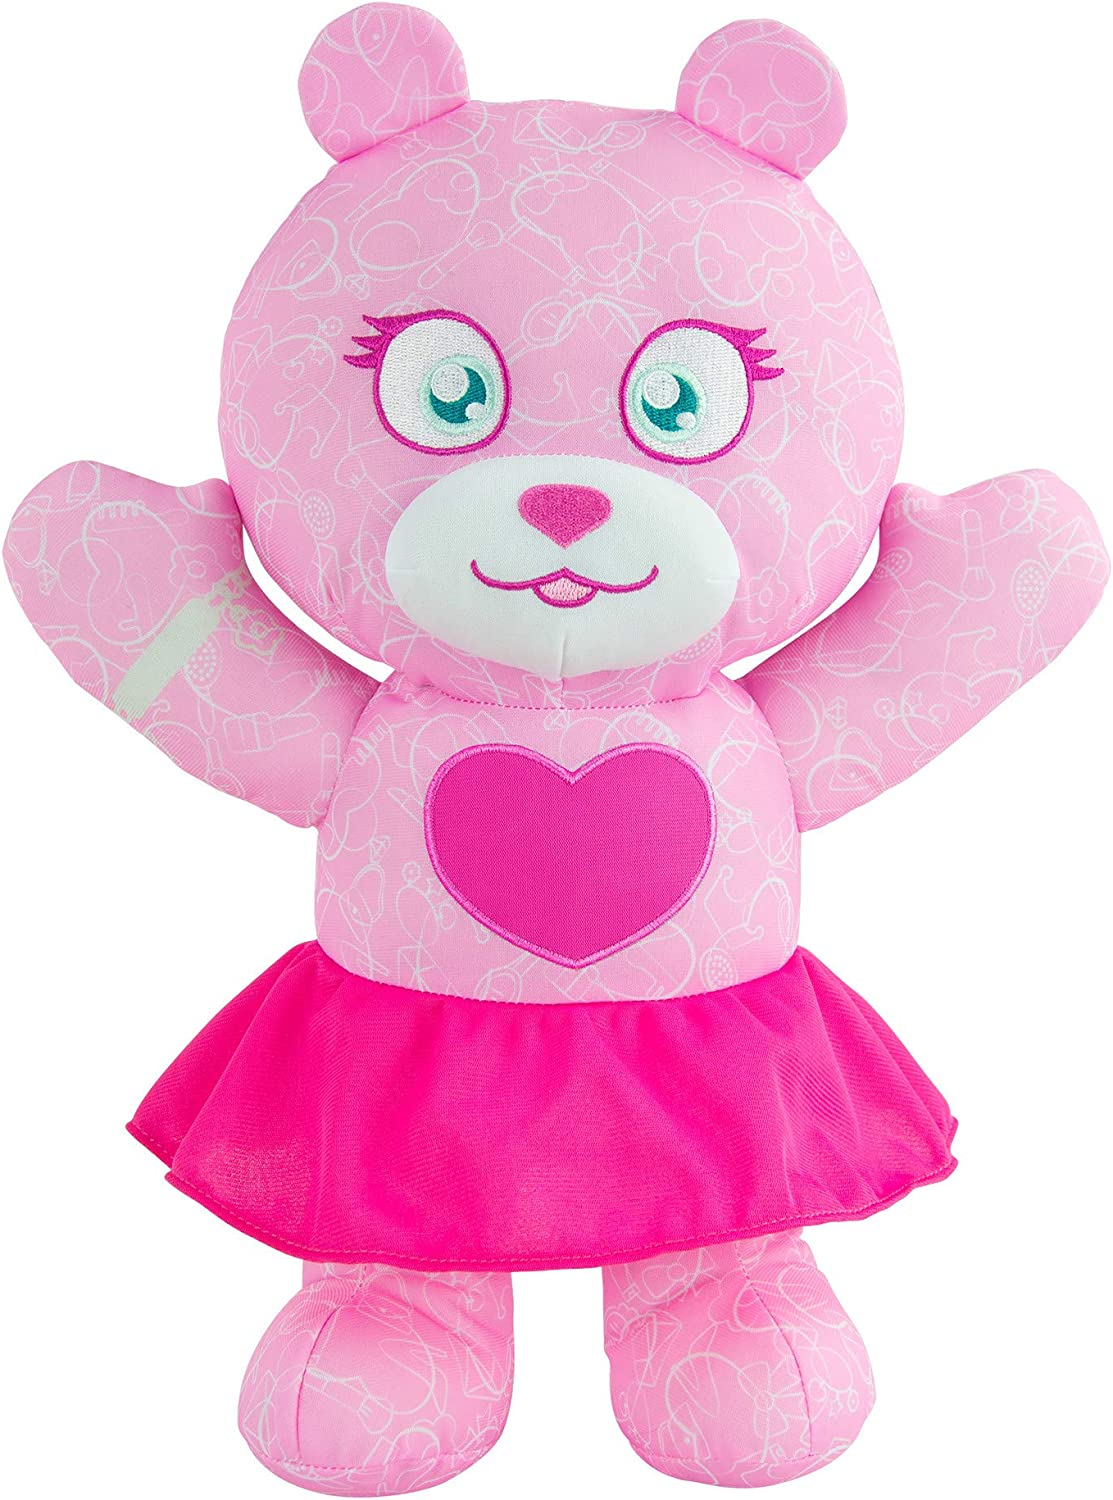 Brittany Stuffed Animal, Amazon Com Doodle Bear The Original Fashion 14 Plush Toy With 3 Ct Washable Marker Set Pink Toys Games